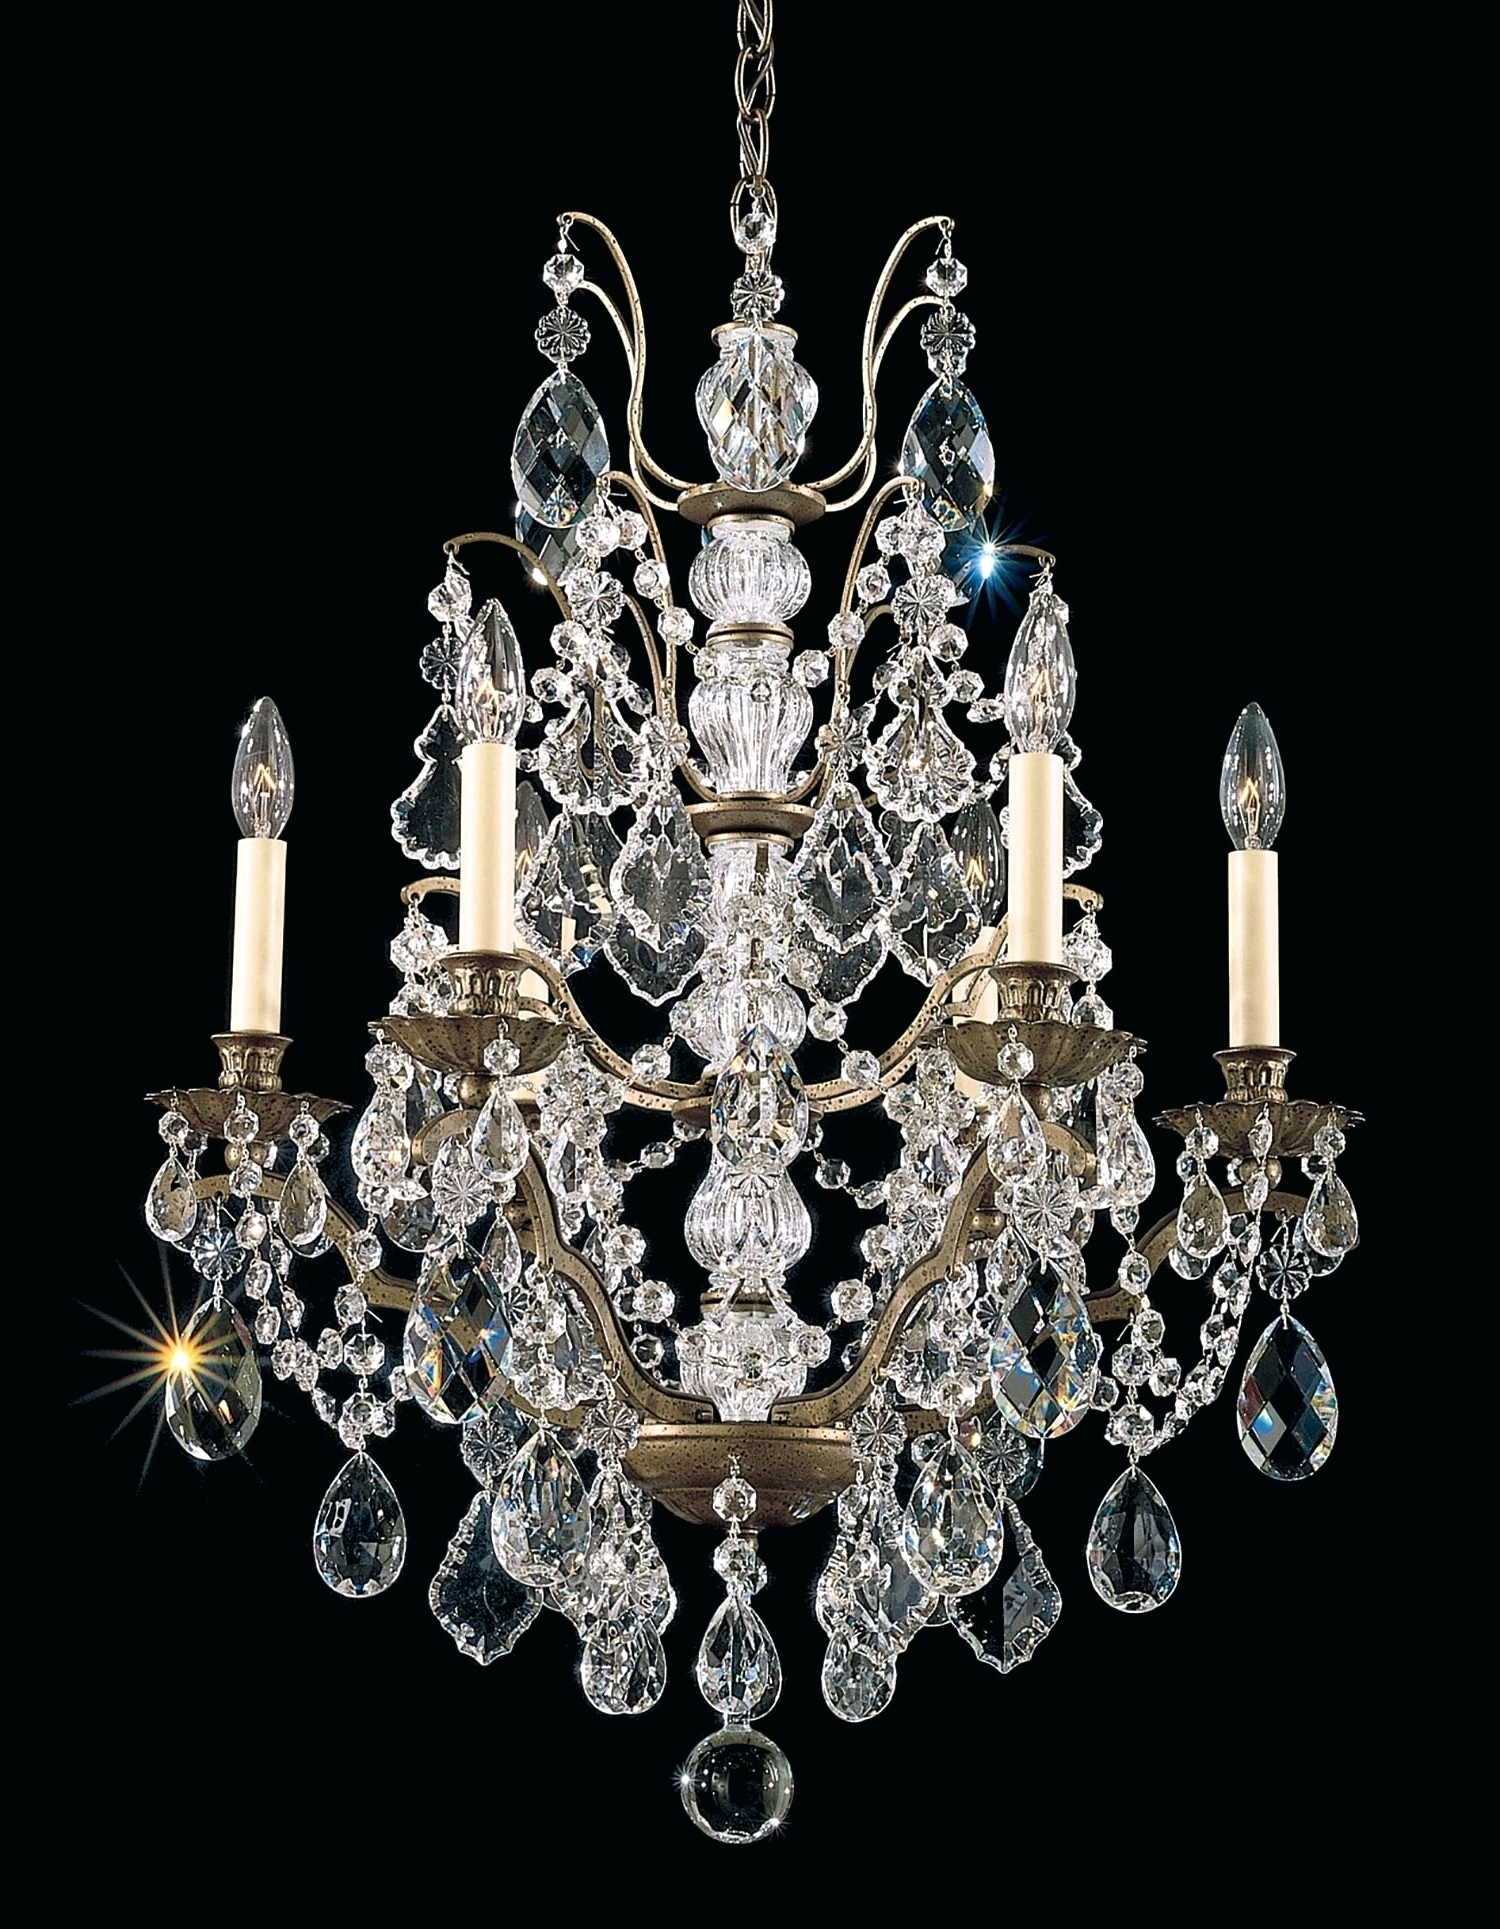 Wall Mounted Mini Chandeliers Pertaining To Recent Chandeliers ~ Wall Mounted Candle Chandelier Dining Room Dining Room (View 16 of 20)